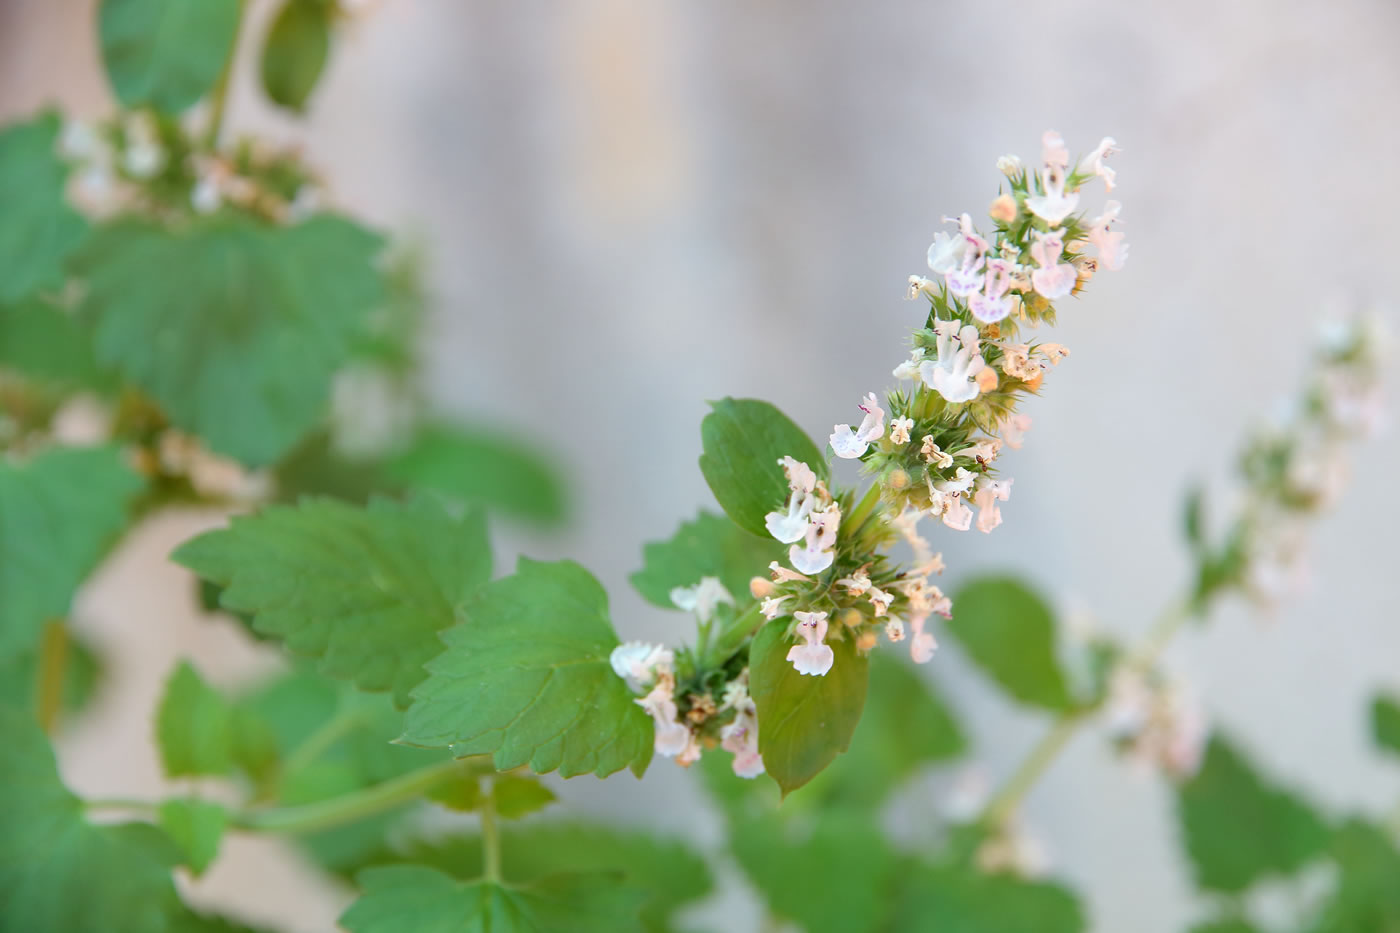 Catnip: Not Just For Cats!